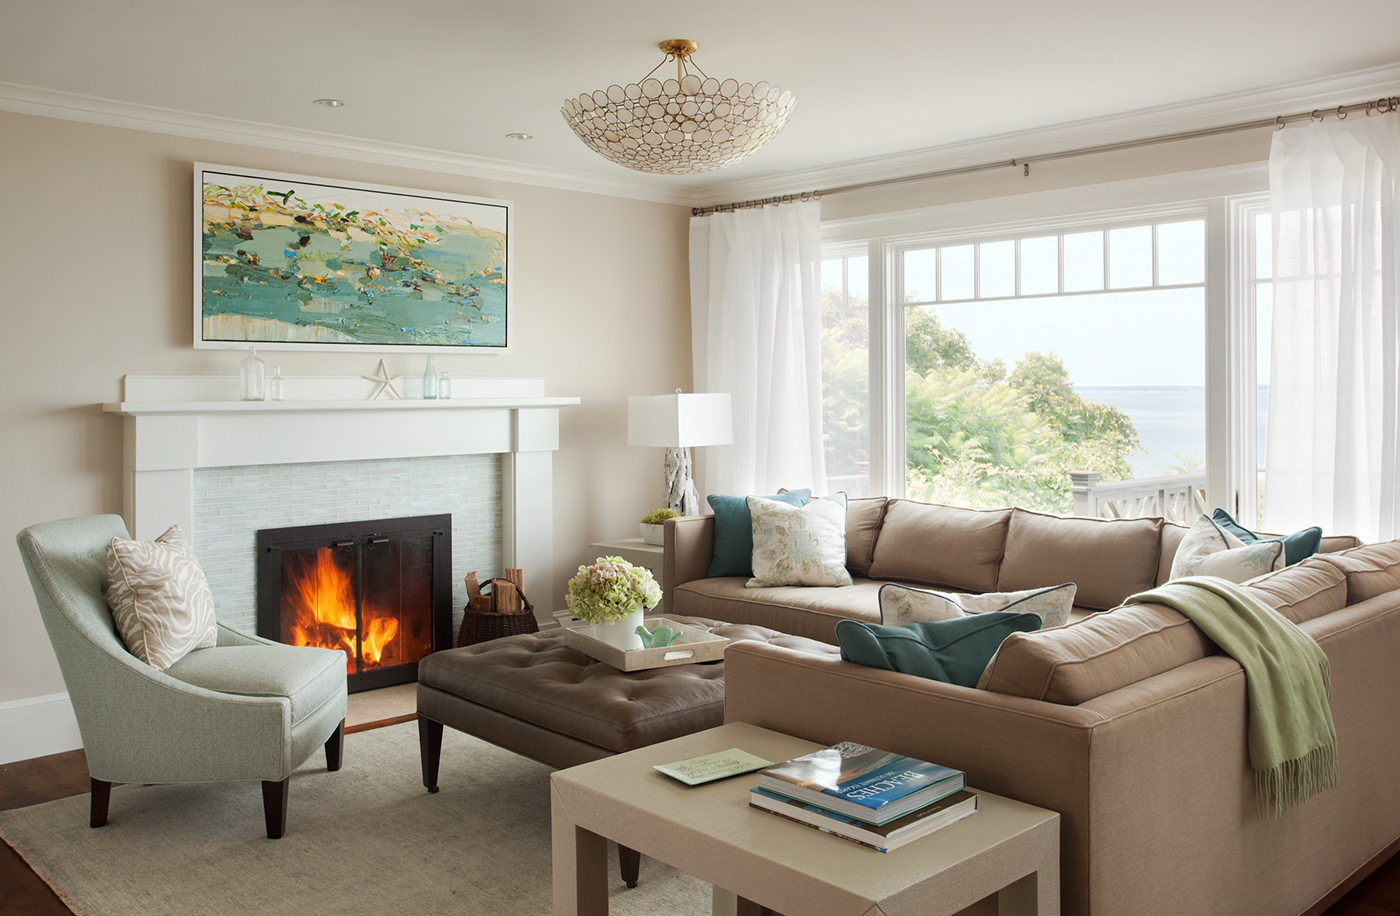 Plymouth Residence Interior Design Styling On Behance